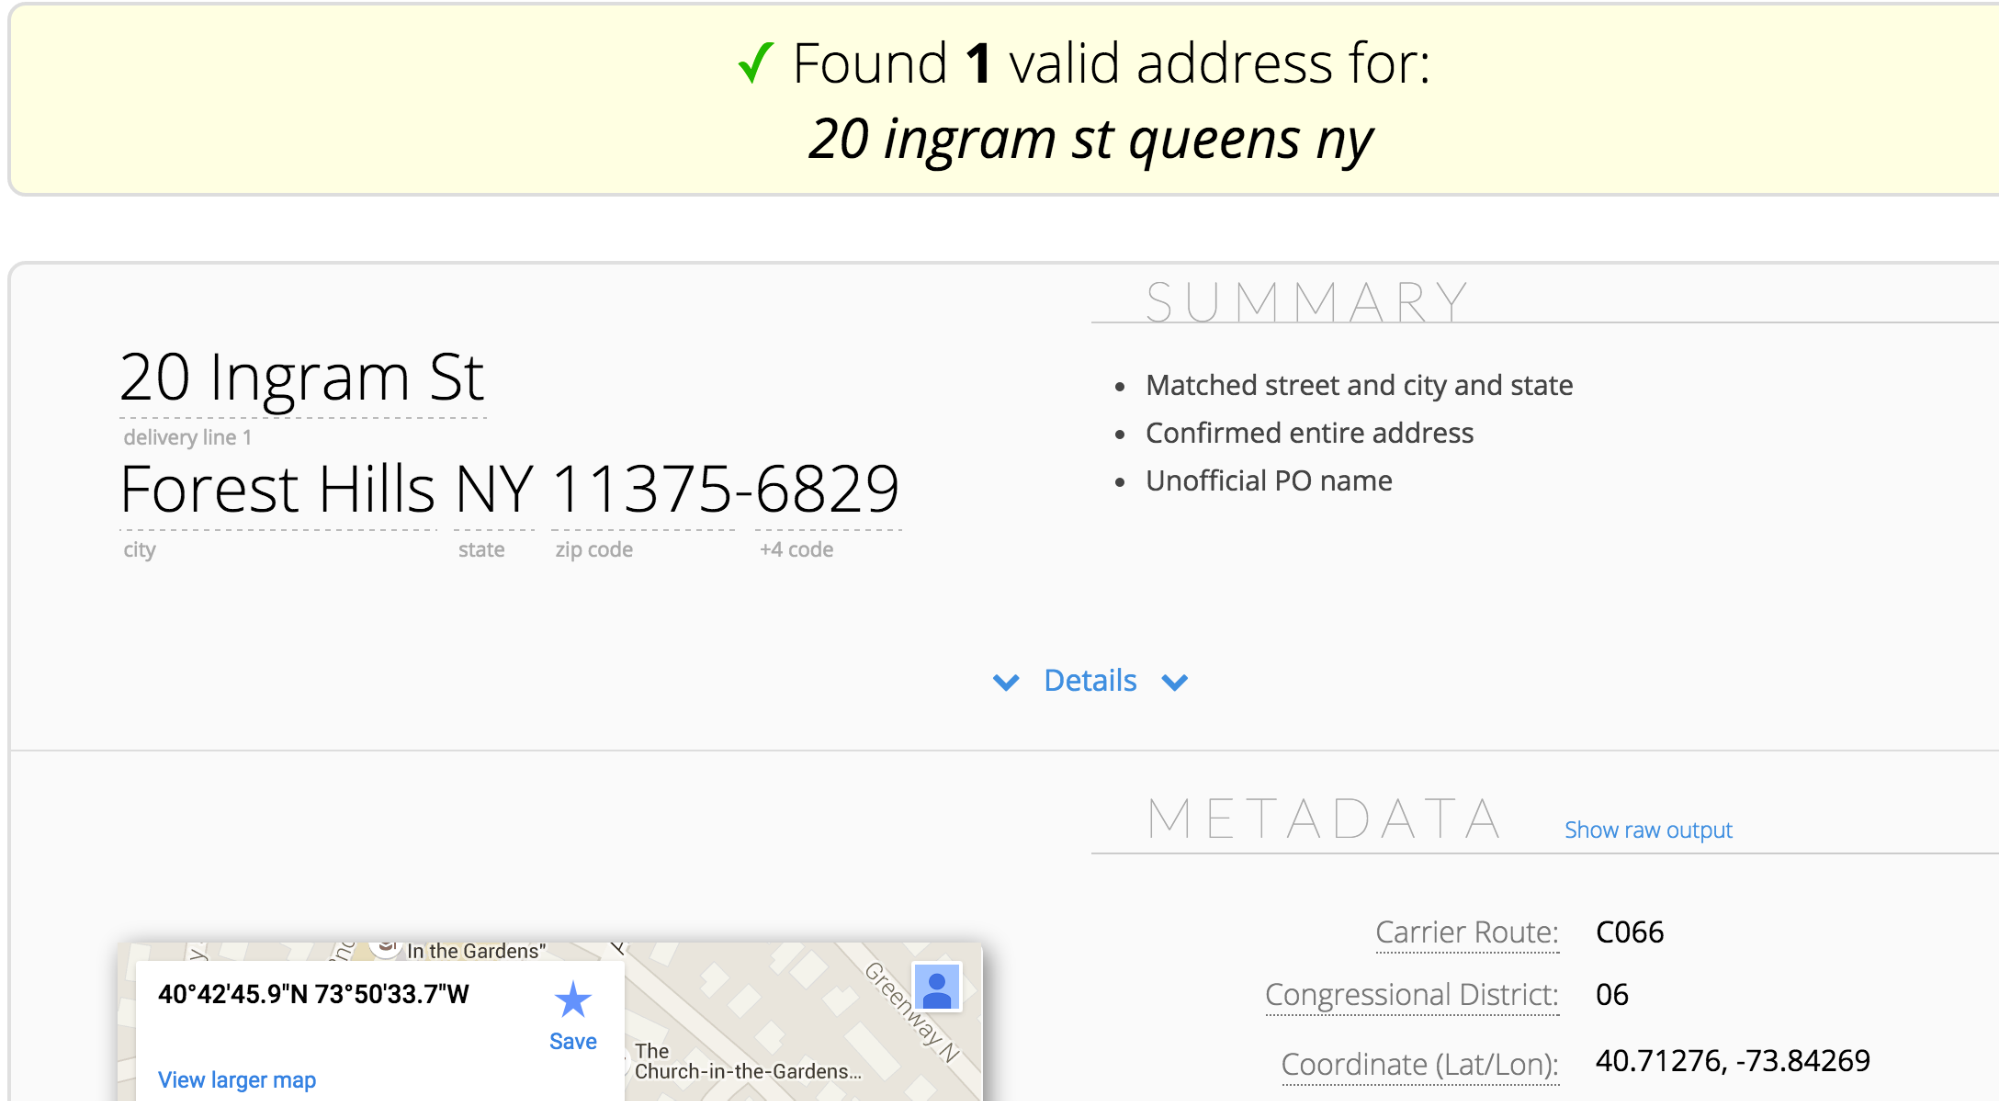 Once the address is validated, the coordinates will be listed.